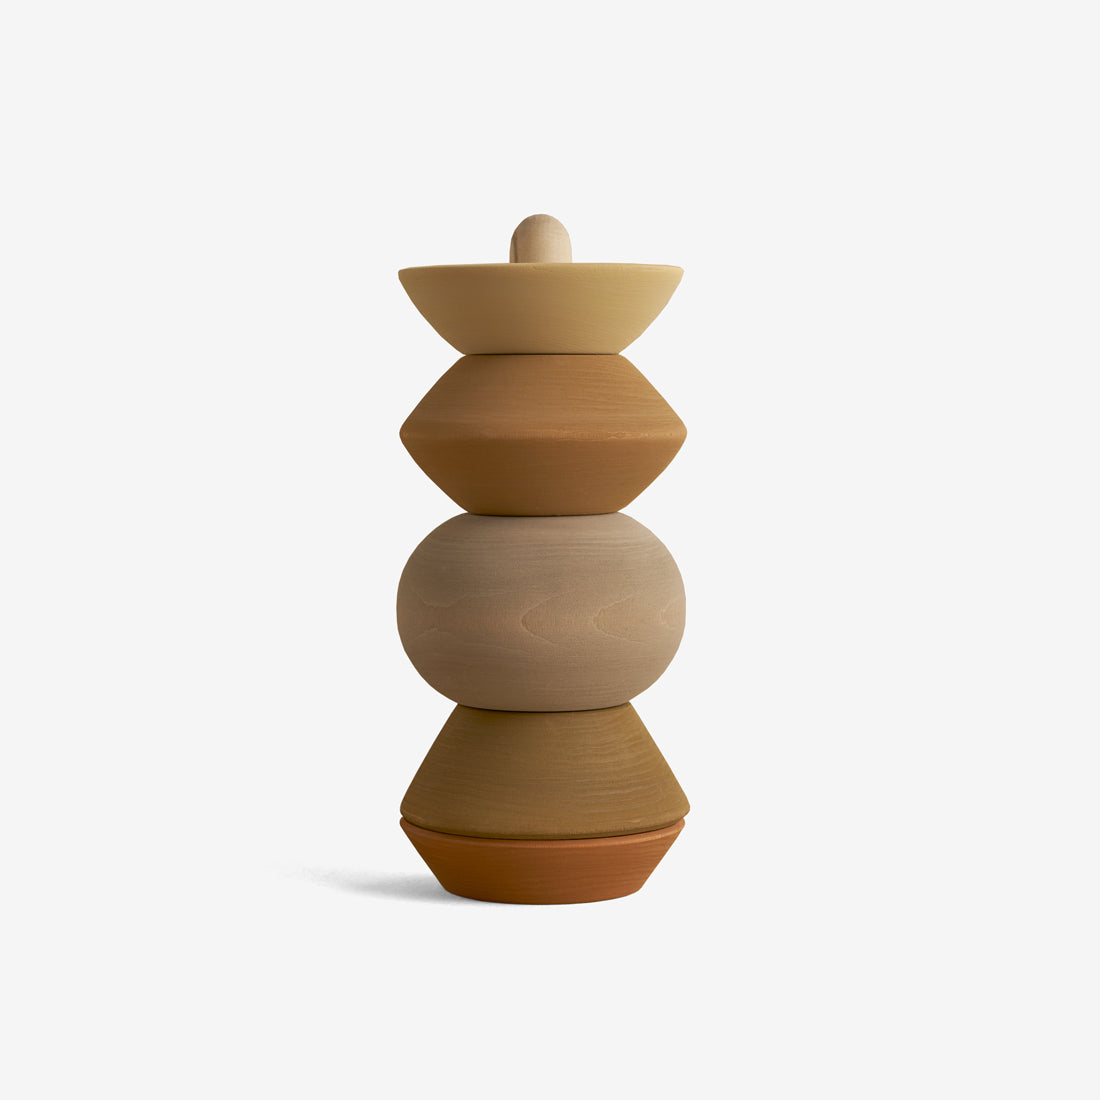 Hardwood Stacking Tower - Ball Sculpture